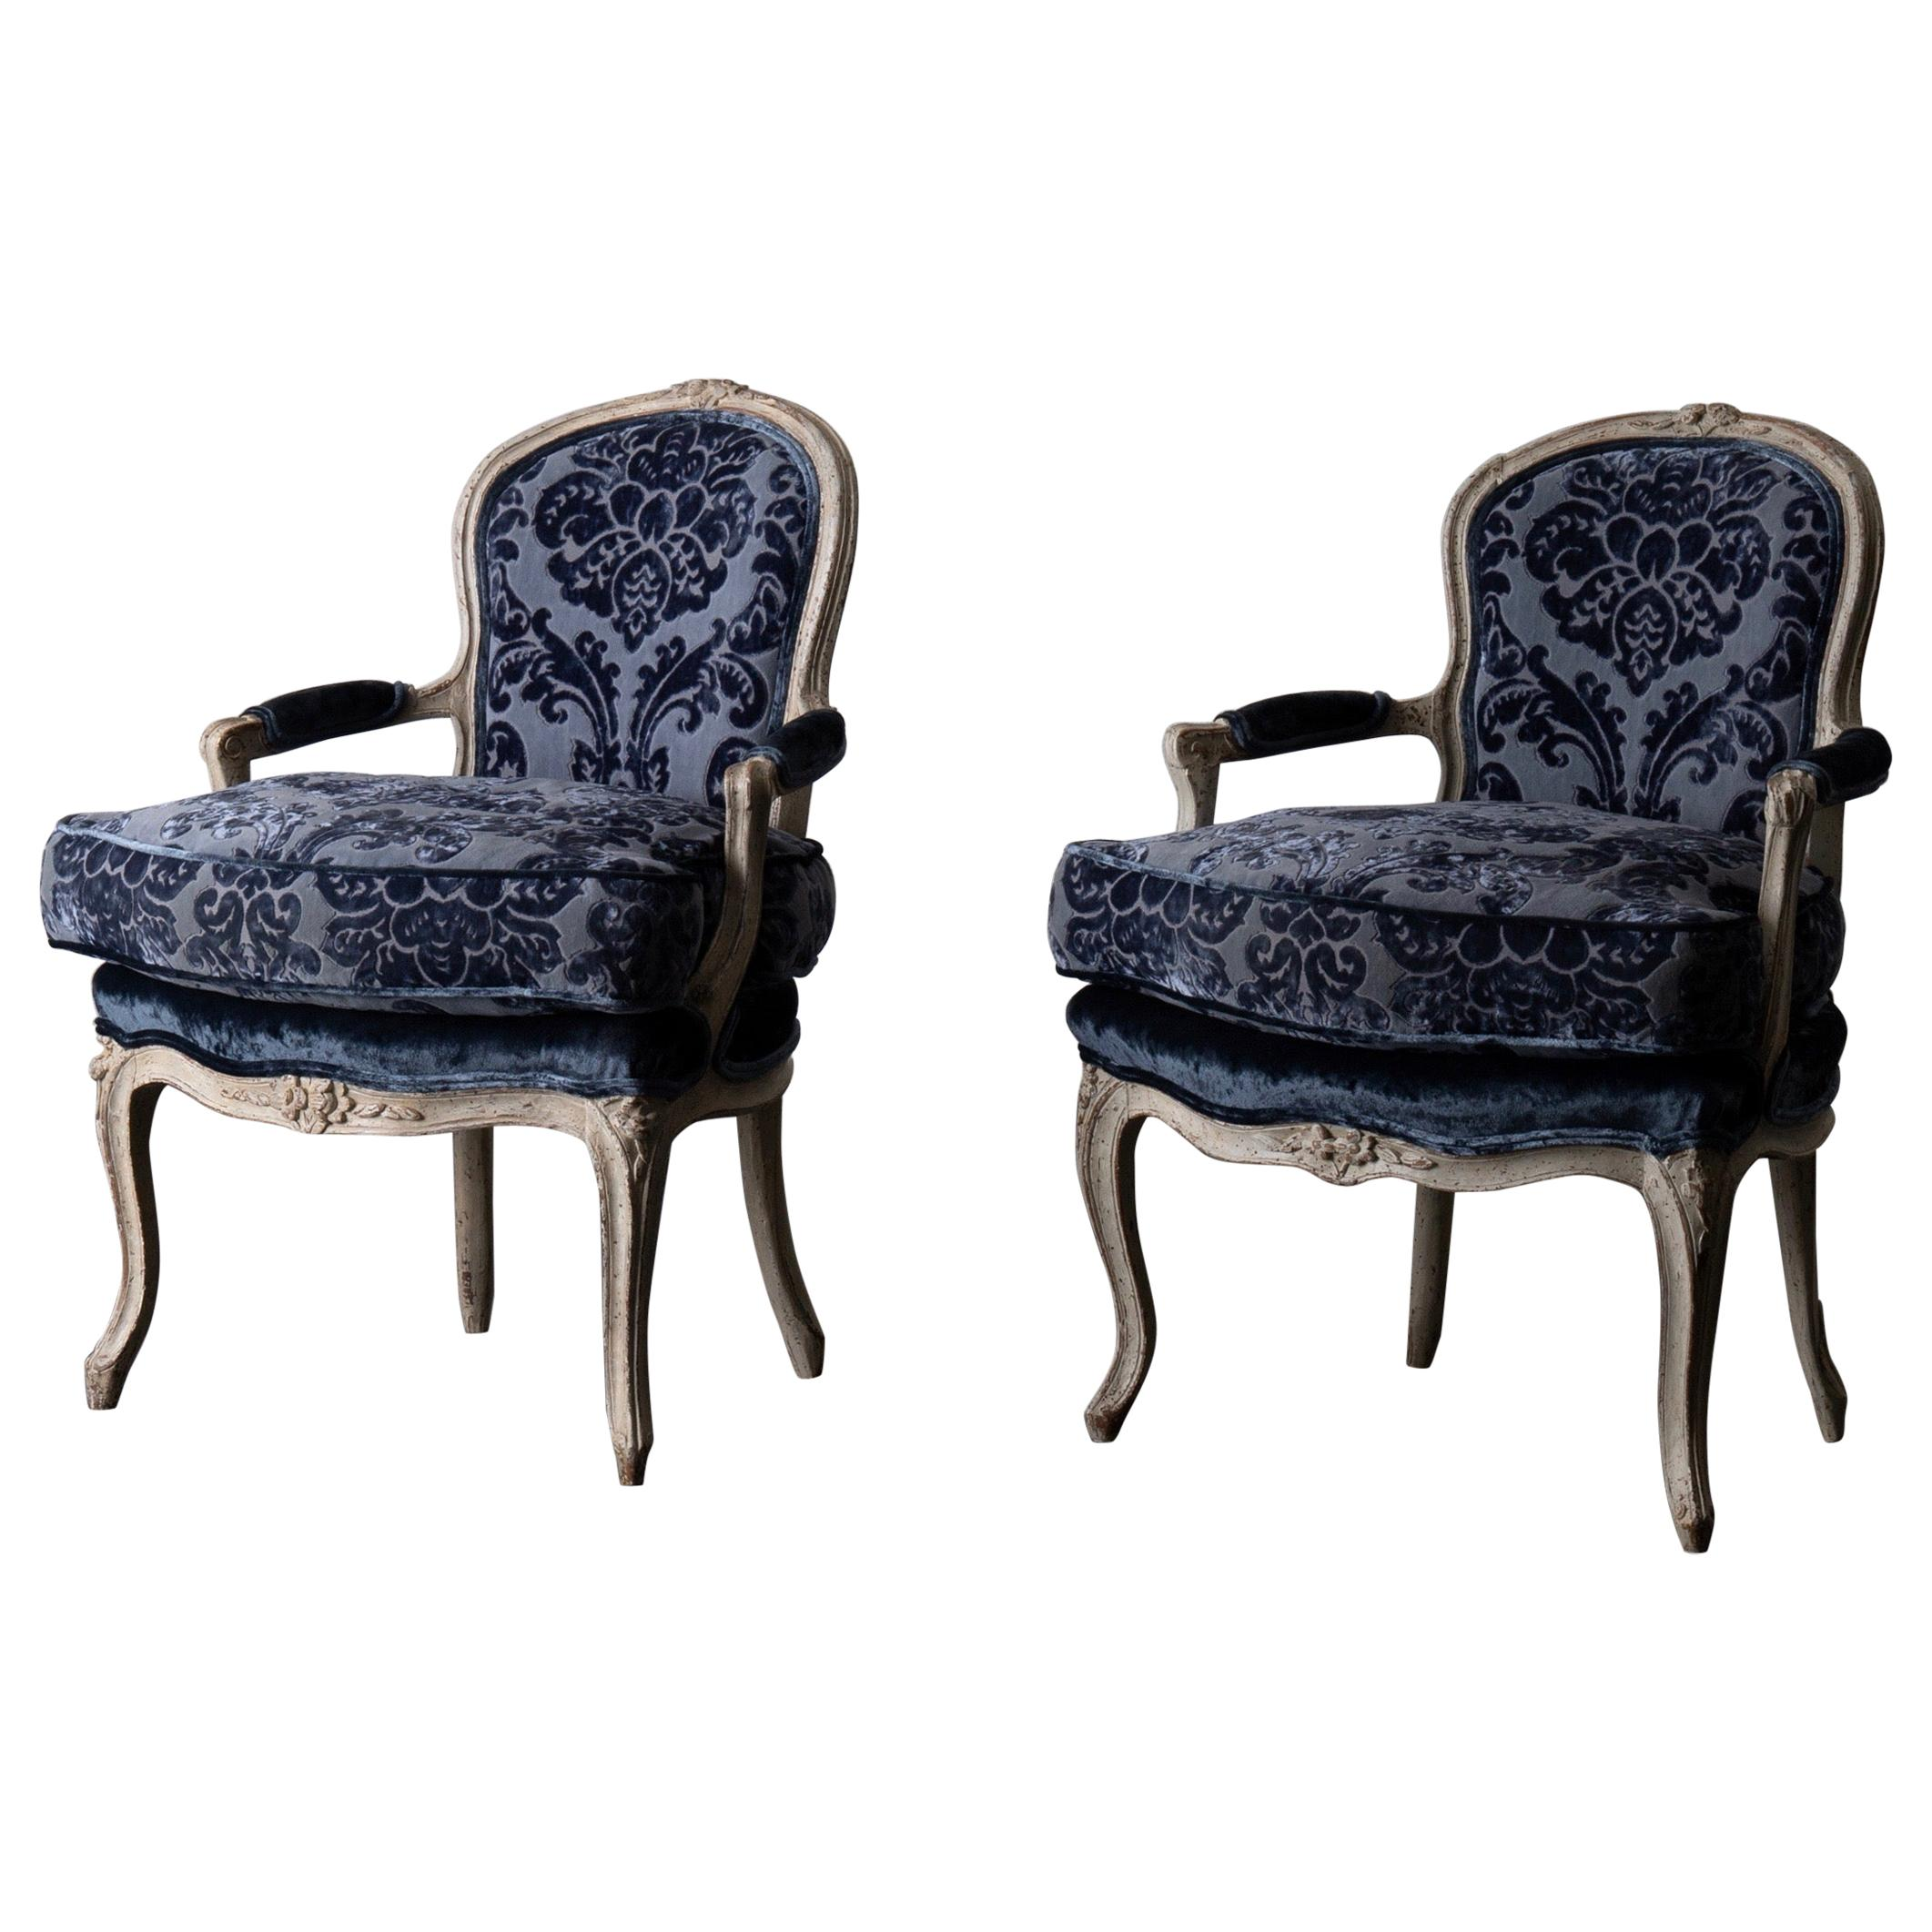 Pair of French Armchairs White Blue Louis XV Period Velvet, France